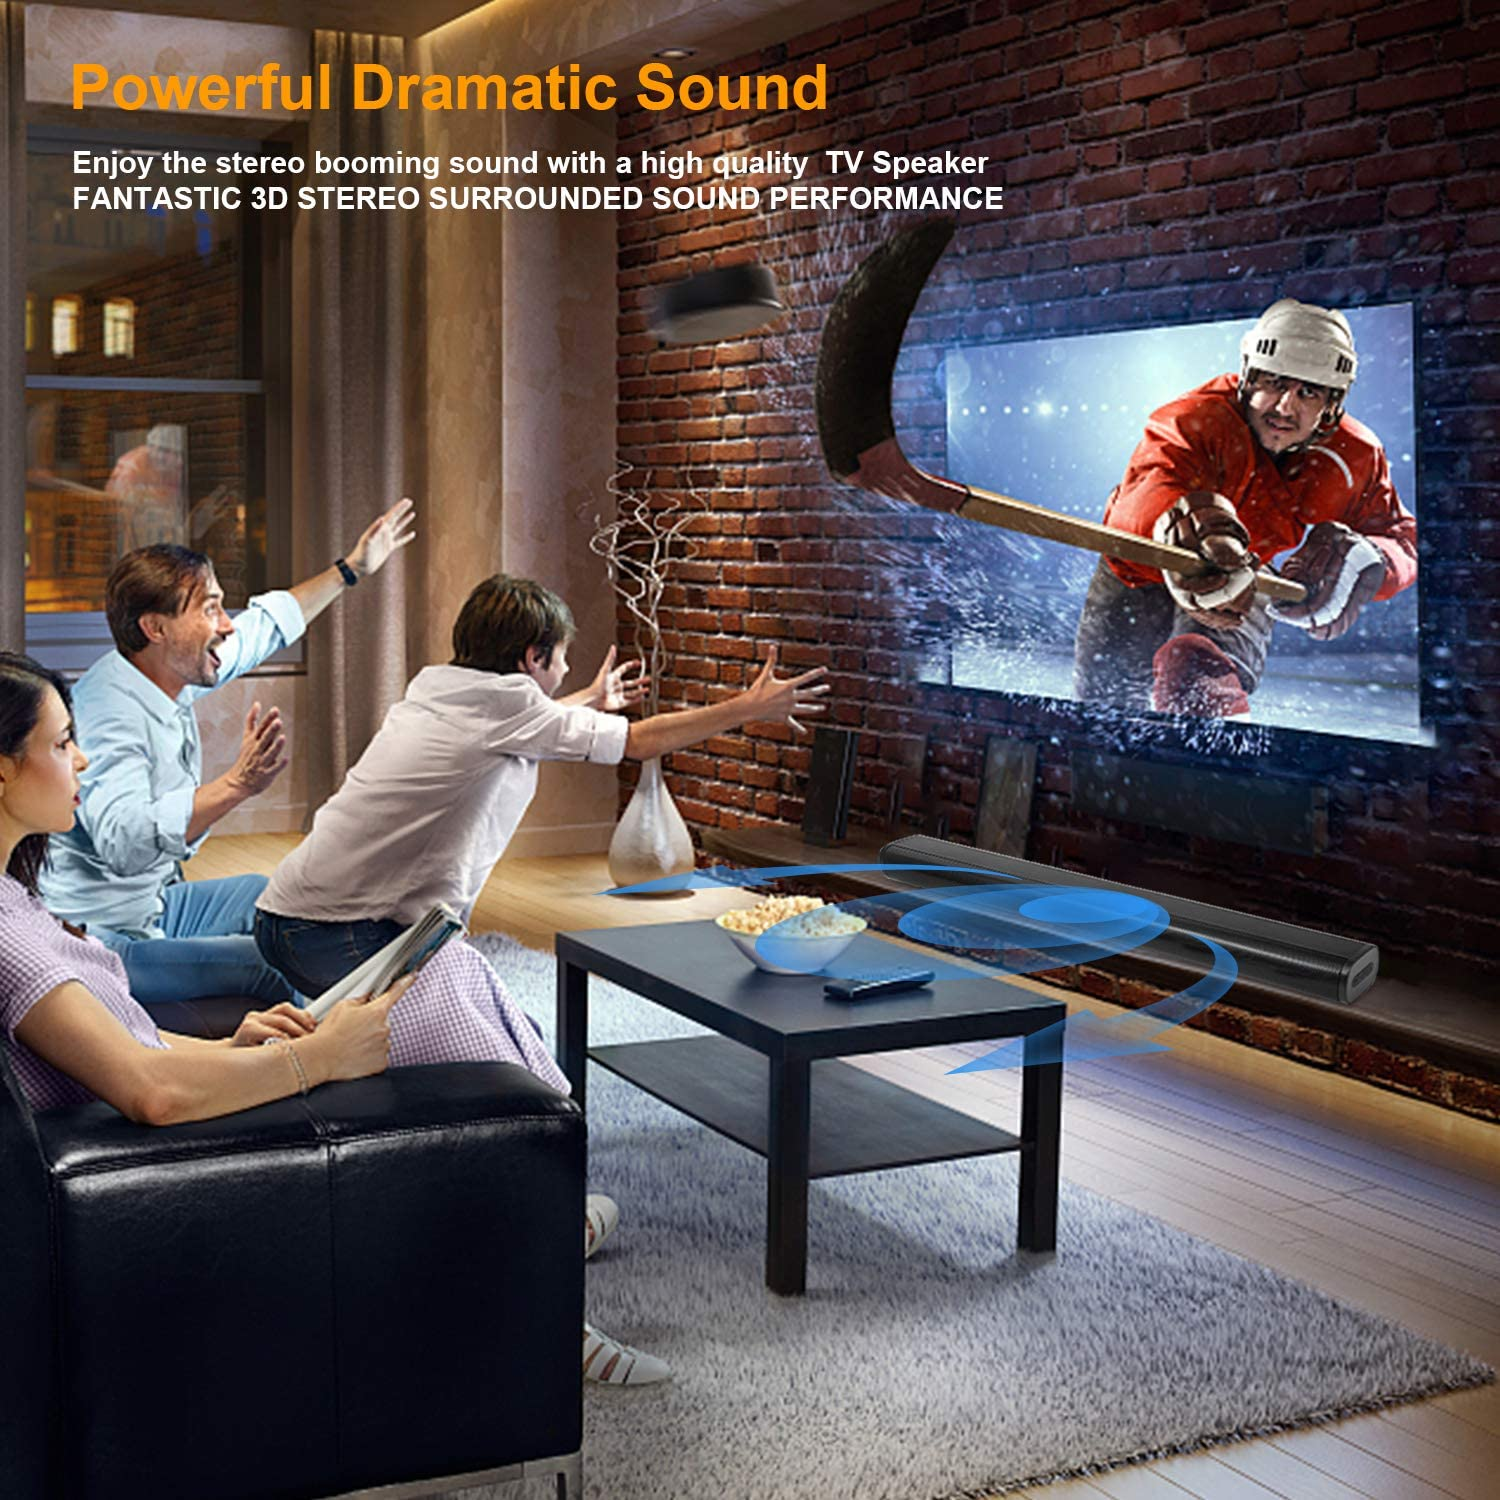 40W Bluetooth 5.0 TV Sound Bar with Built-in Dual Subwoofer SR250 AKIXNO Soundbar 2.0 HDMI//Optical//AUX//USB//TF Card//DC in//LINE in 32 INCH Adjustable Equalizer Mode Home Theater Speakers for TV PC